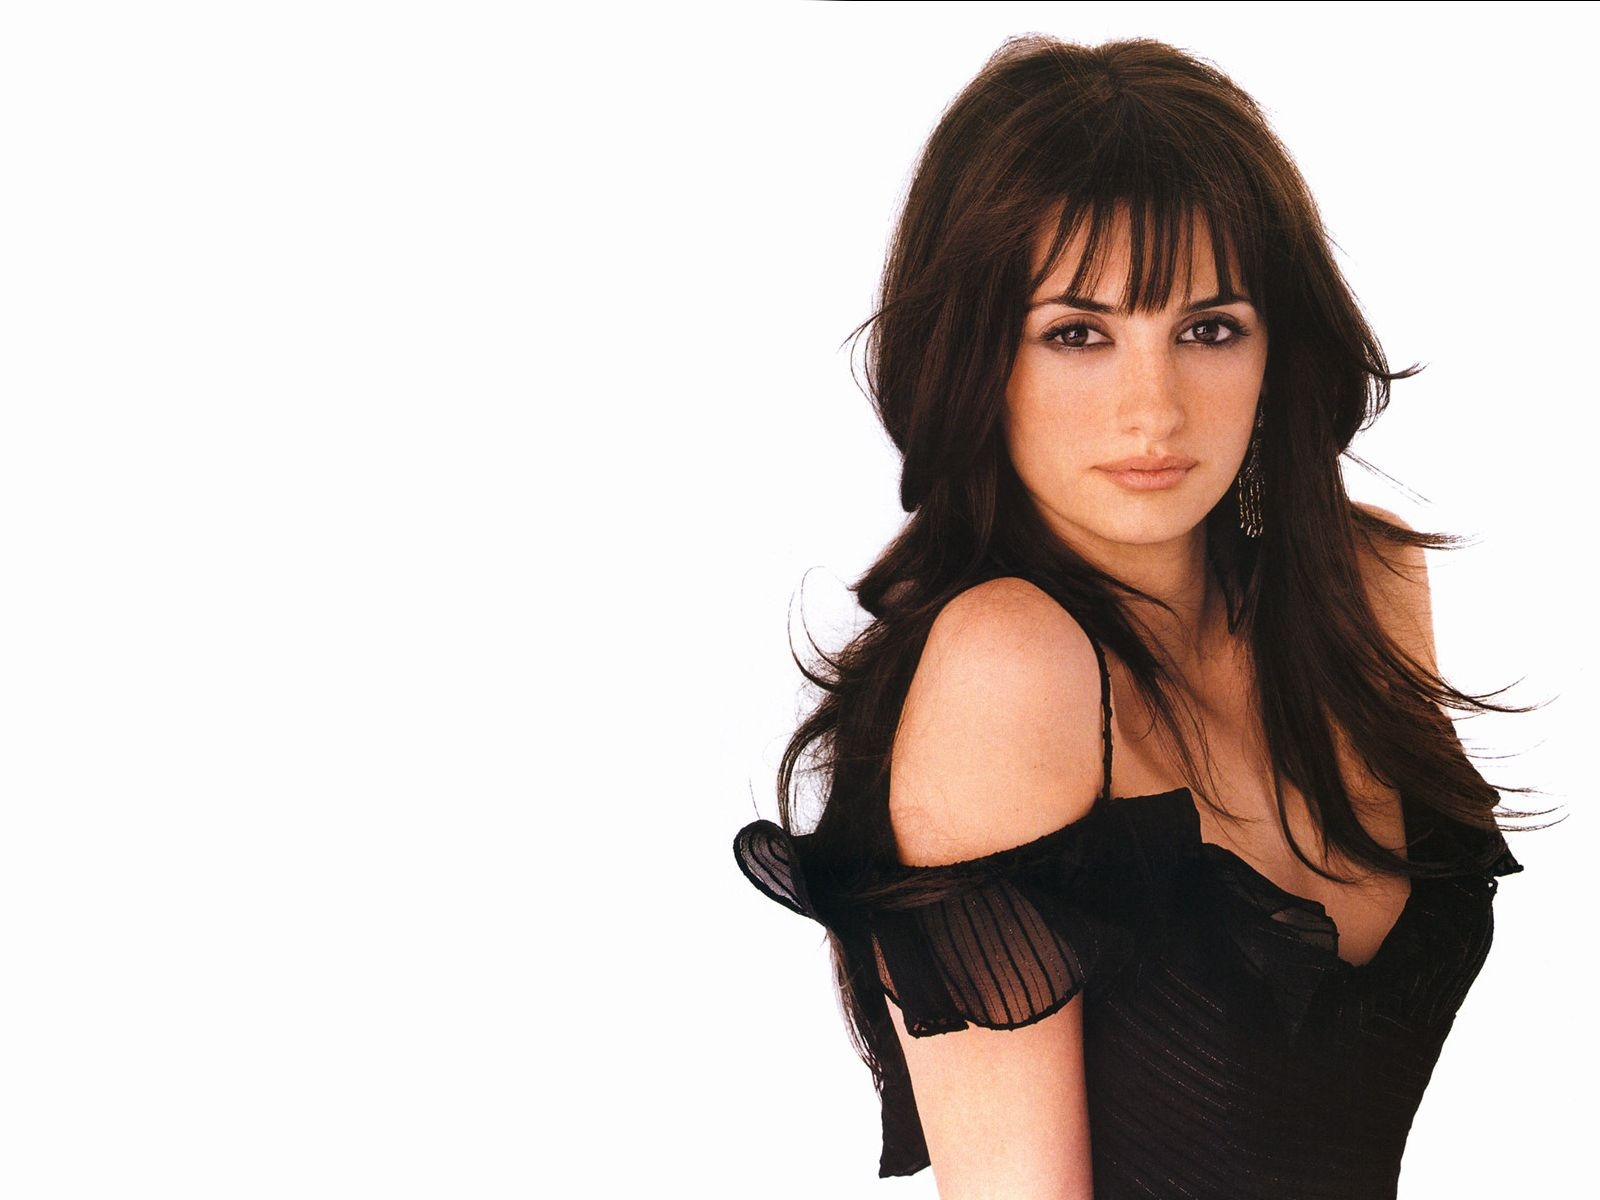 beautiful artists poster penelope cruz in sexy tight